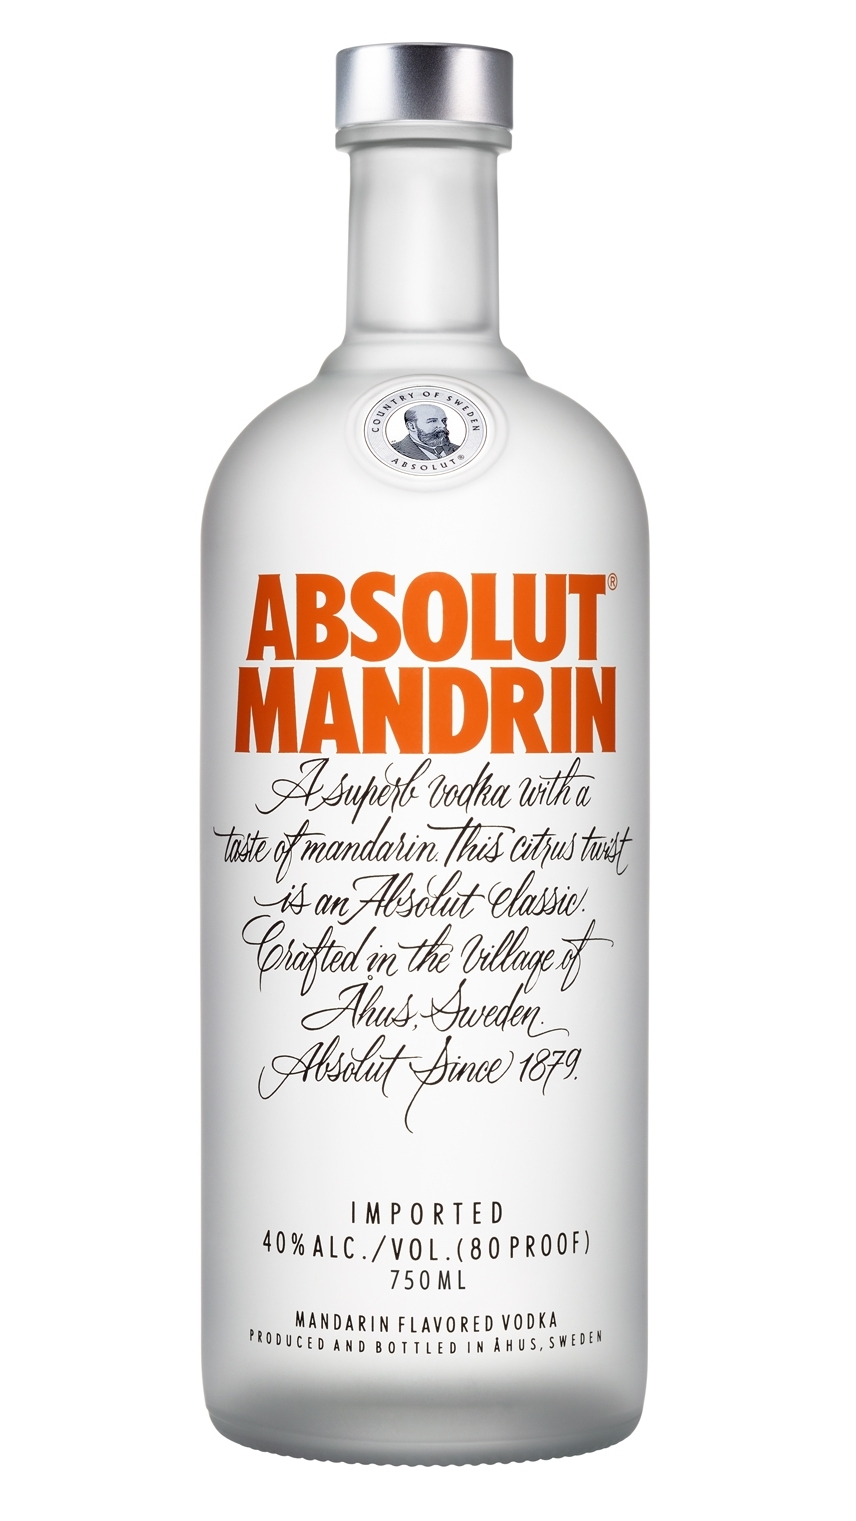 Absolut-Mandrin-Straight.jpg